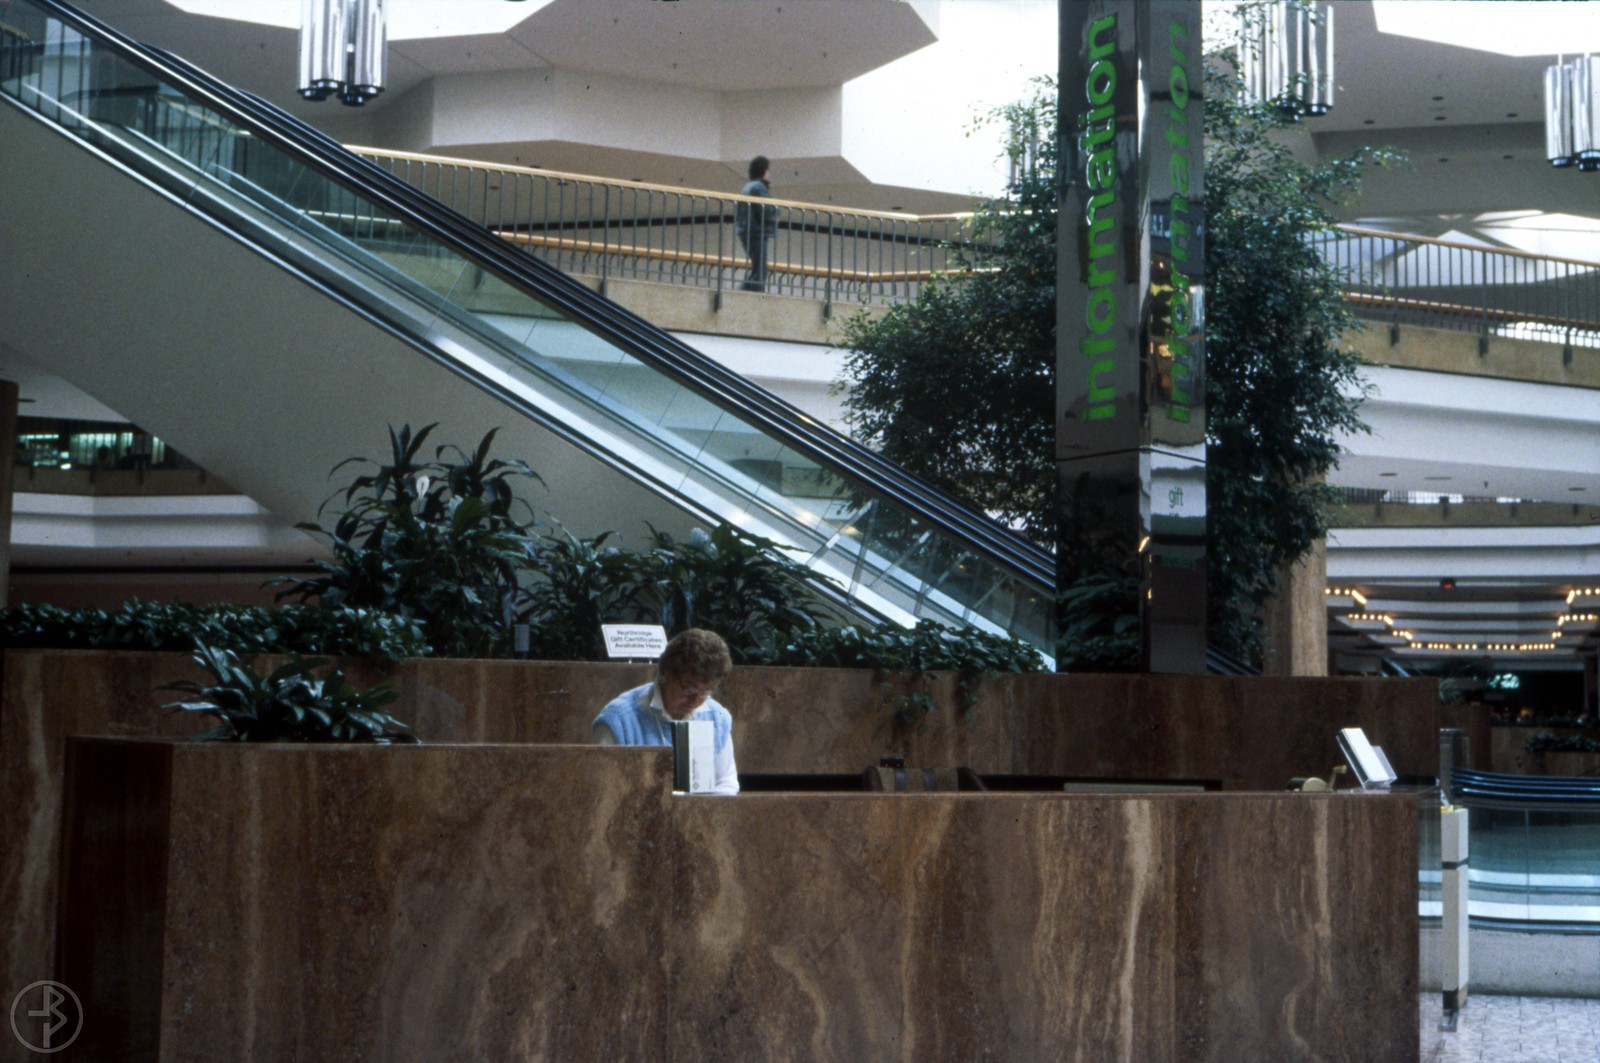 Northridge Mall 87-88